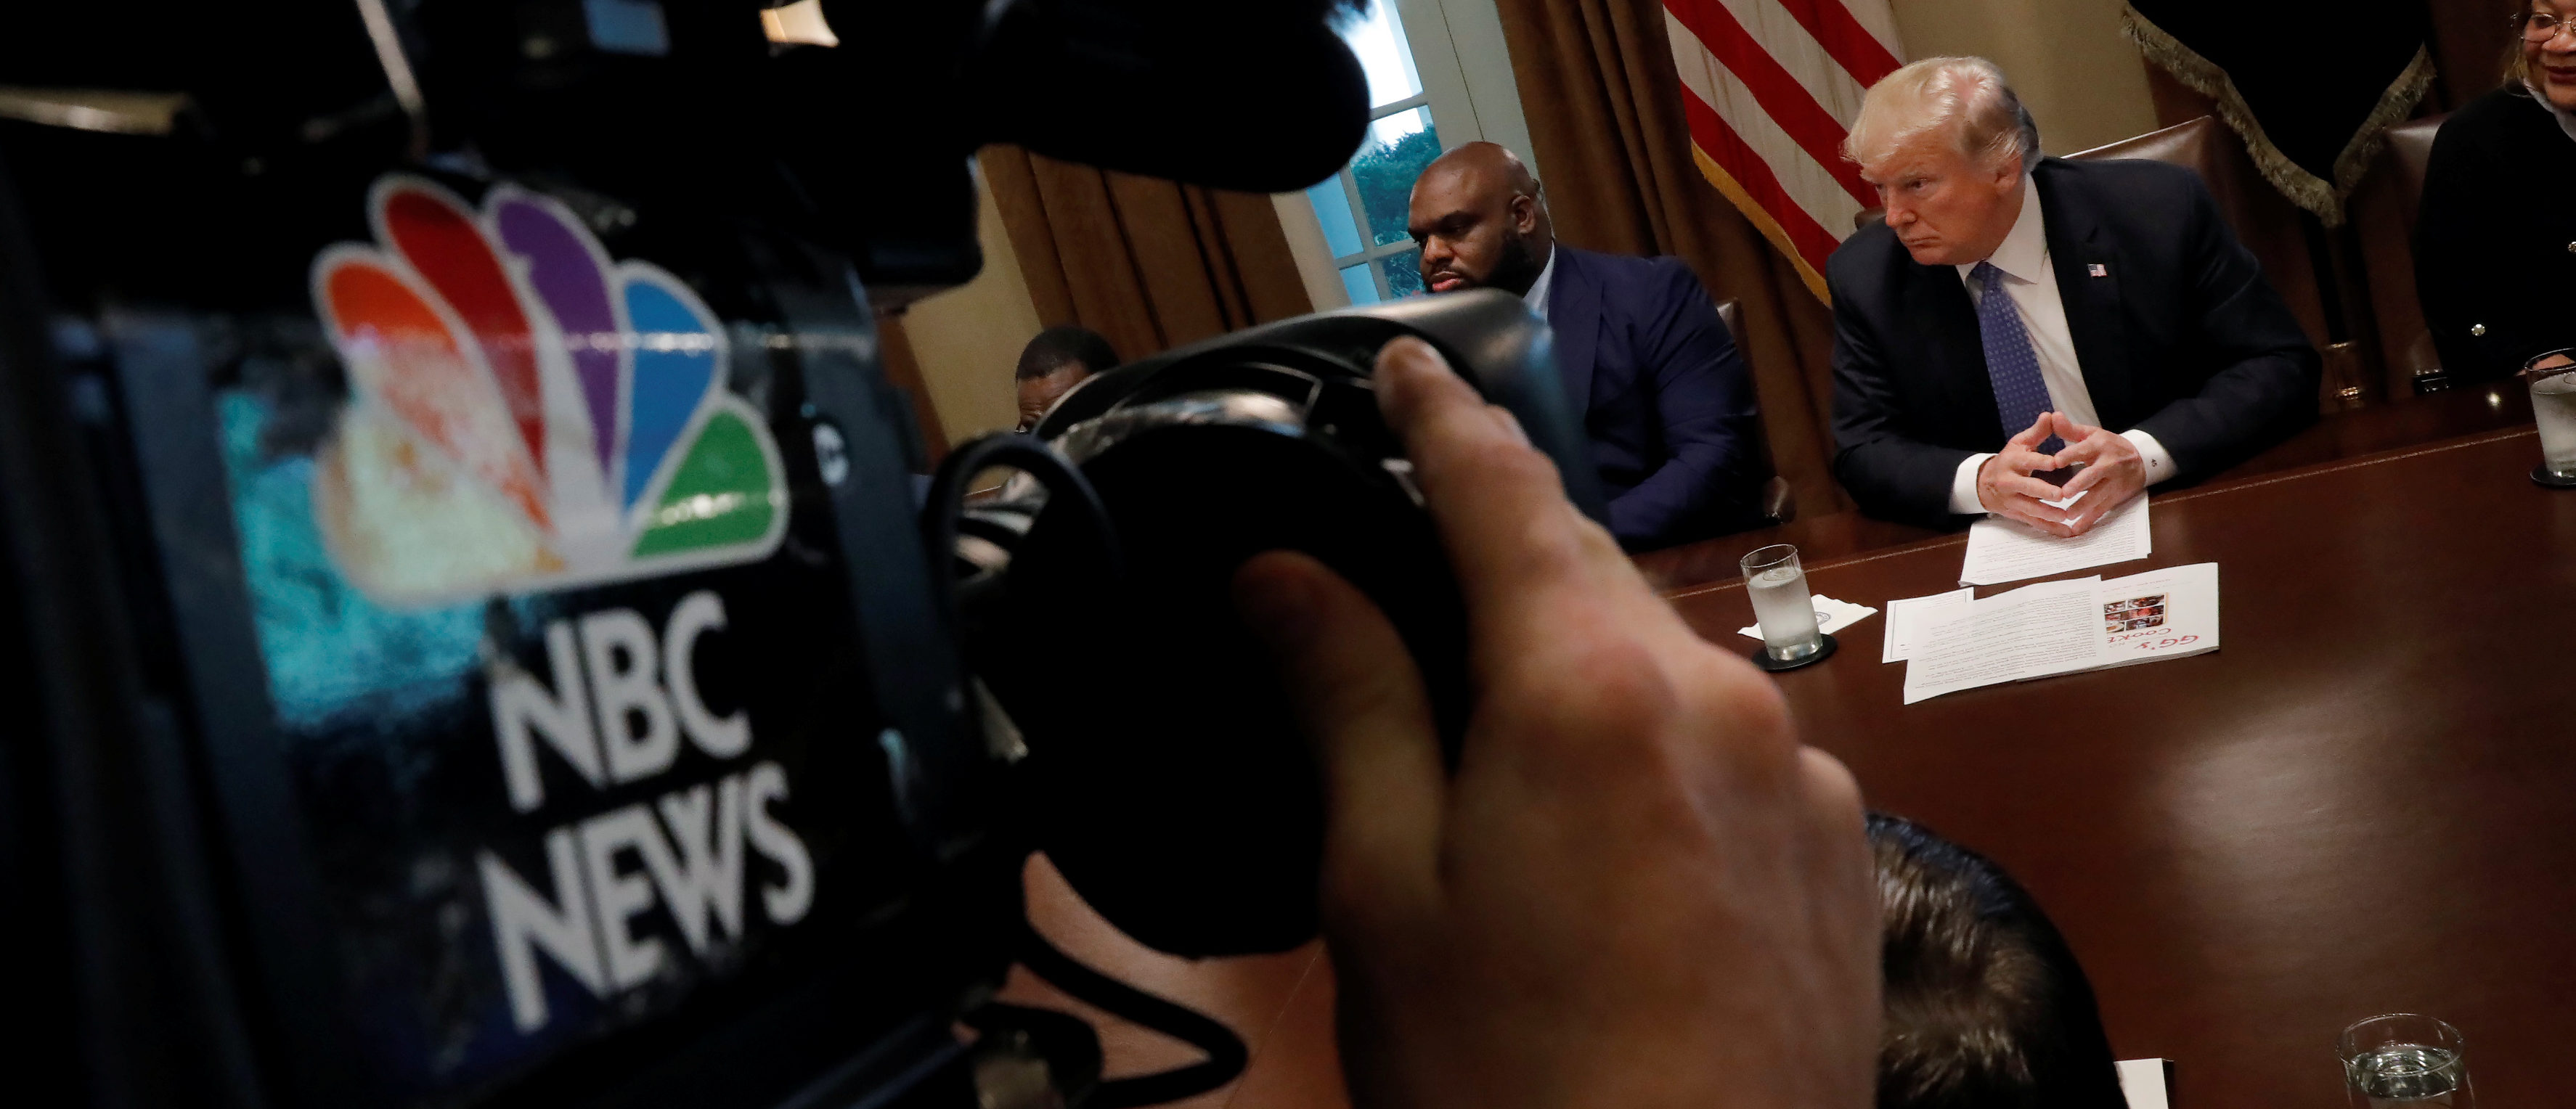 A NBC cameraman films a meeting between President Donald Trump and inner city pastors meeting with at the Cabinet Room of the White House in Washington D.C., August 1, 2018. REUTERS/Carlos Barria